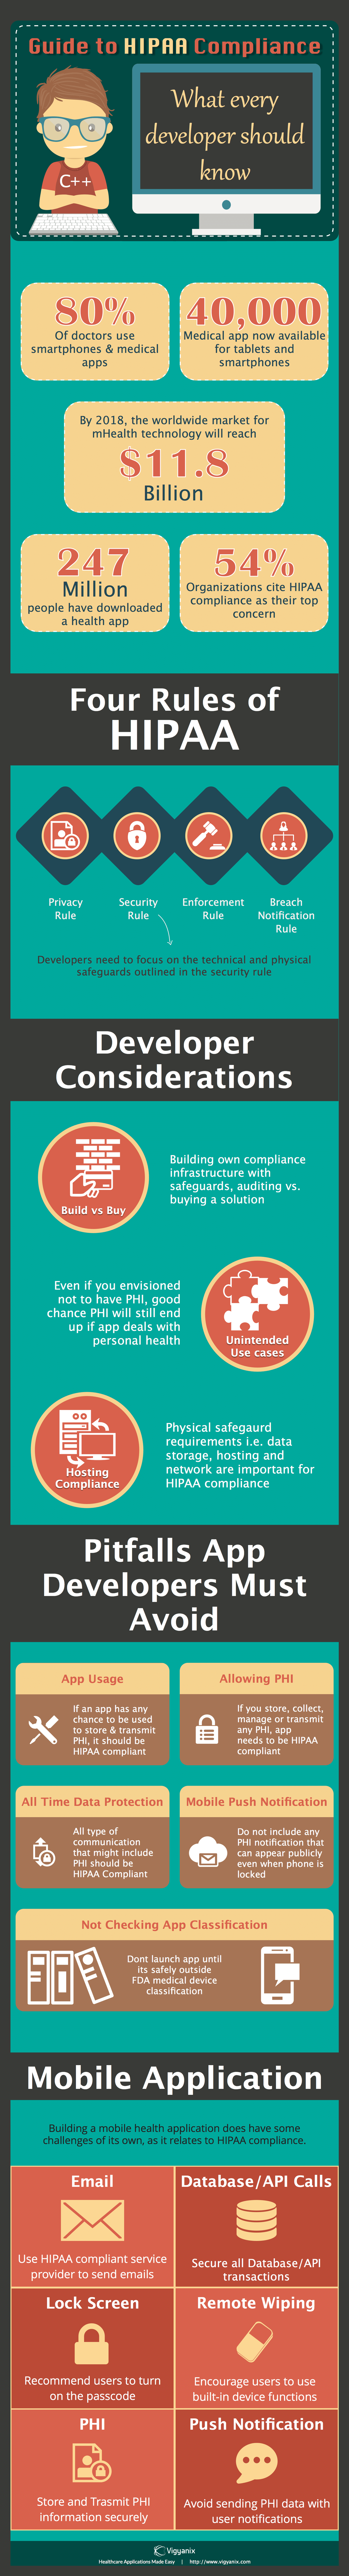 hipaa-compliance-what-every-developer-should-know-infographic-c